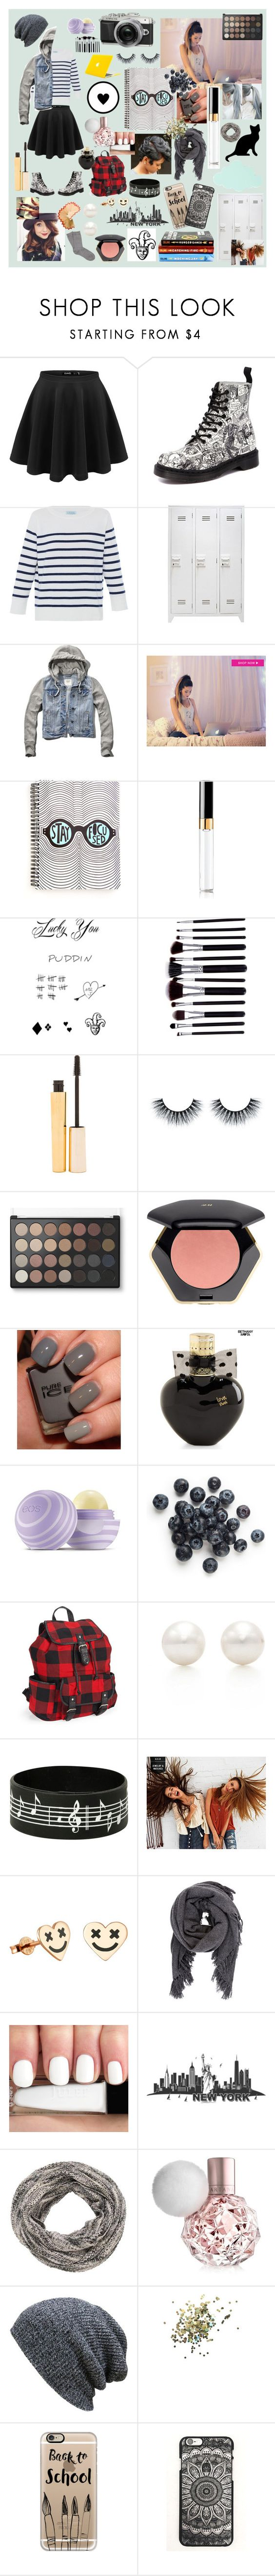 """Bring it Back* ~ Back To School"" by gummywums ❤ liked on Polyvore featuring Dr. Martens, HANIA by Anya Cole, ferm LIVING, Abercrombie & Fitch, Retrò, Chanel, Stila, H&M, Aéropostale and Eos"